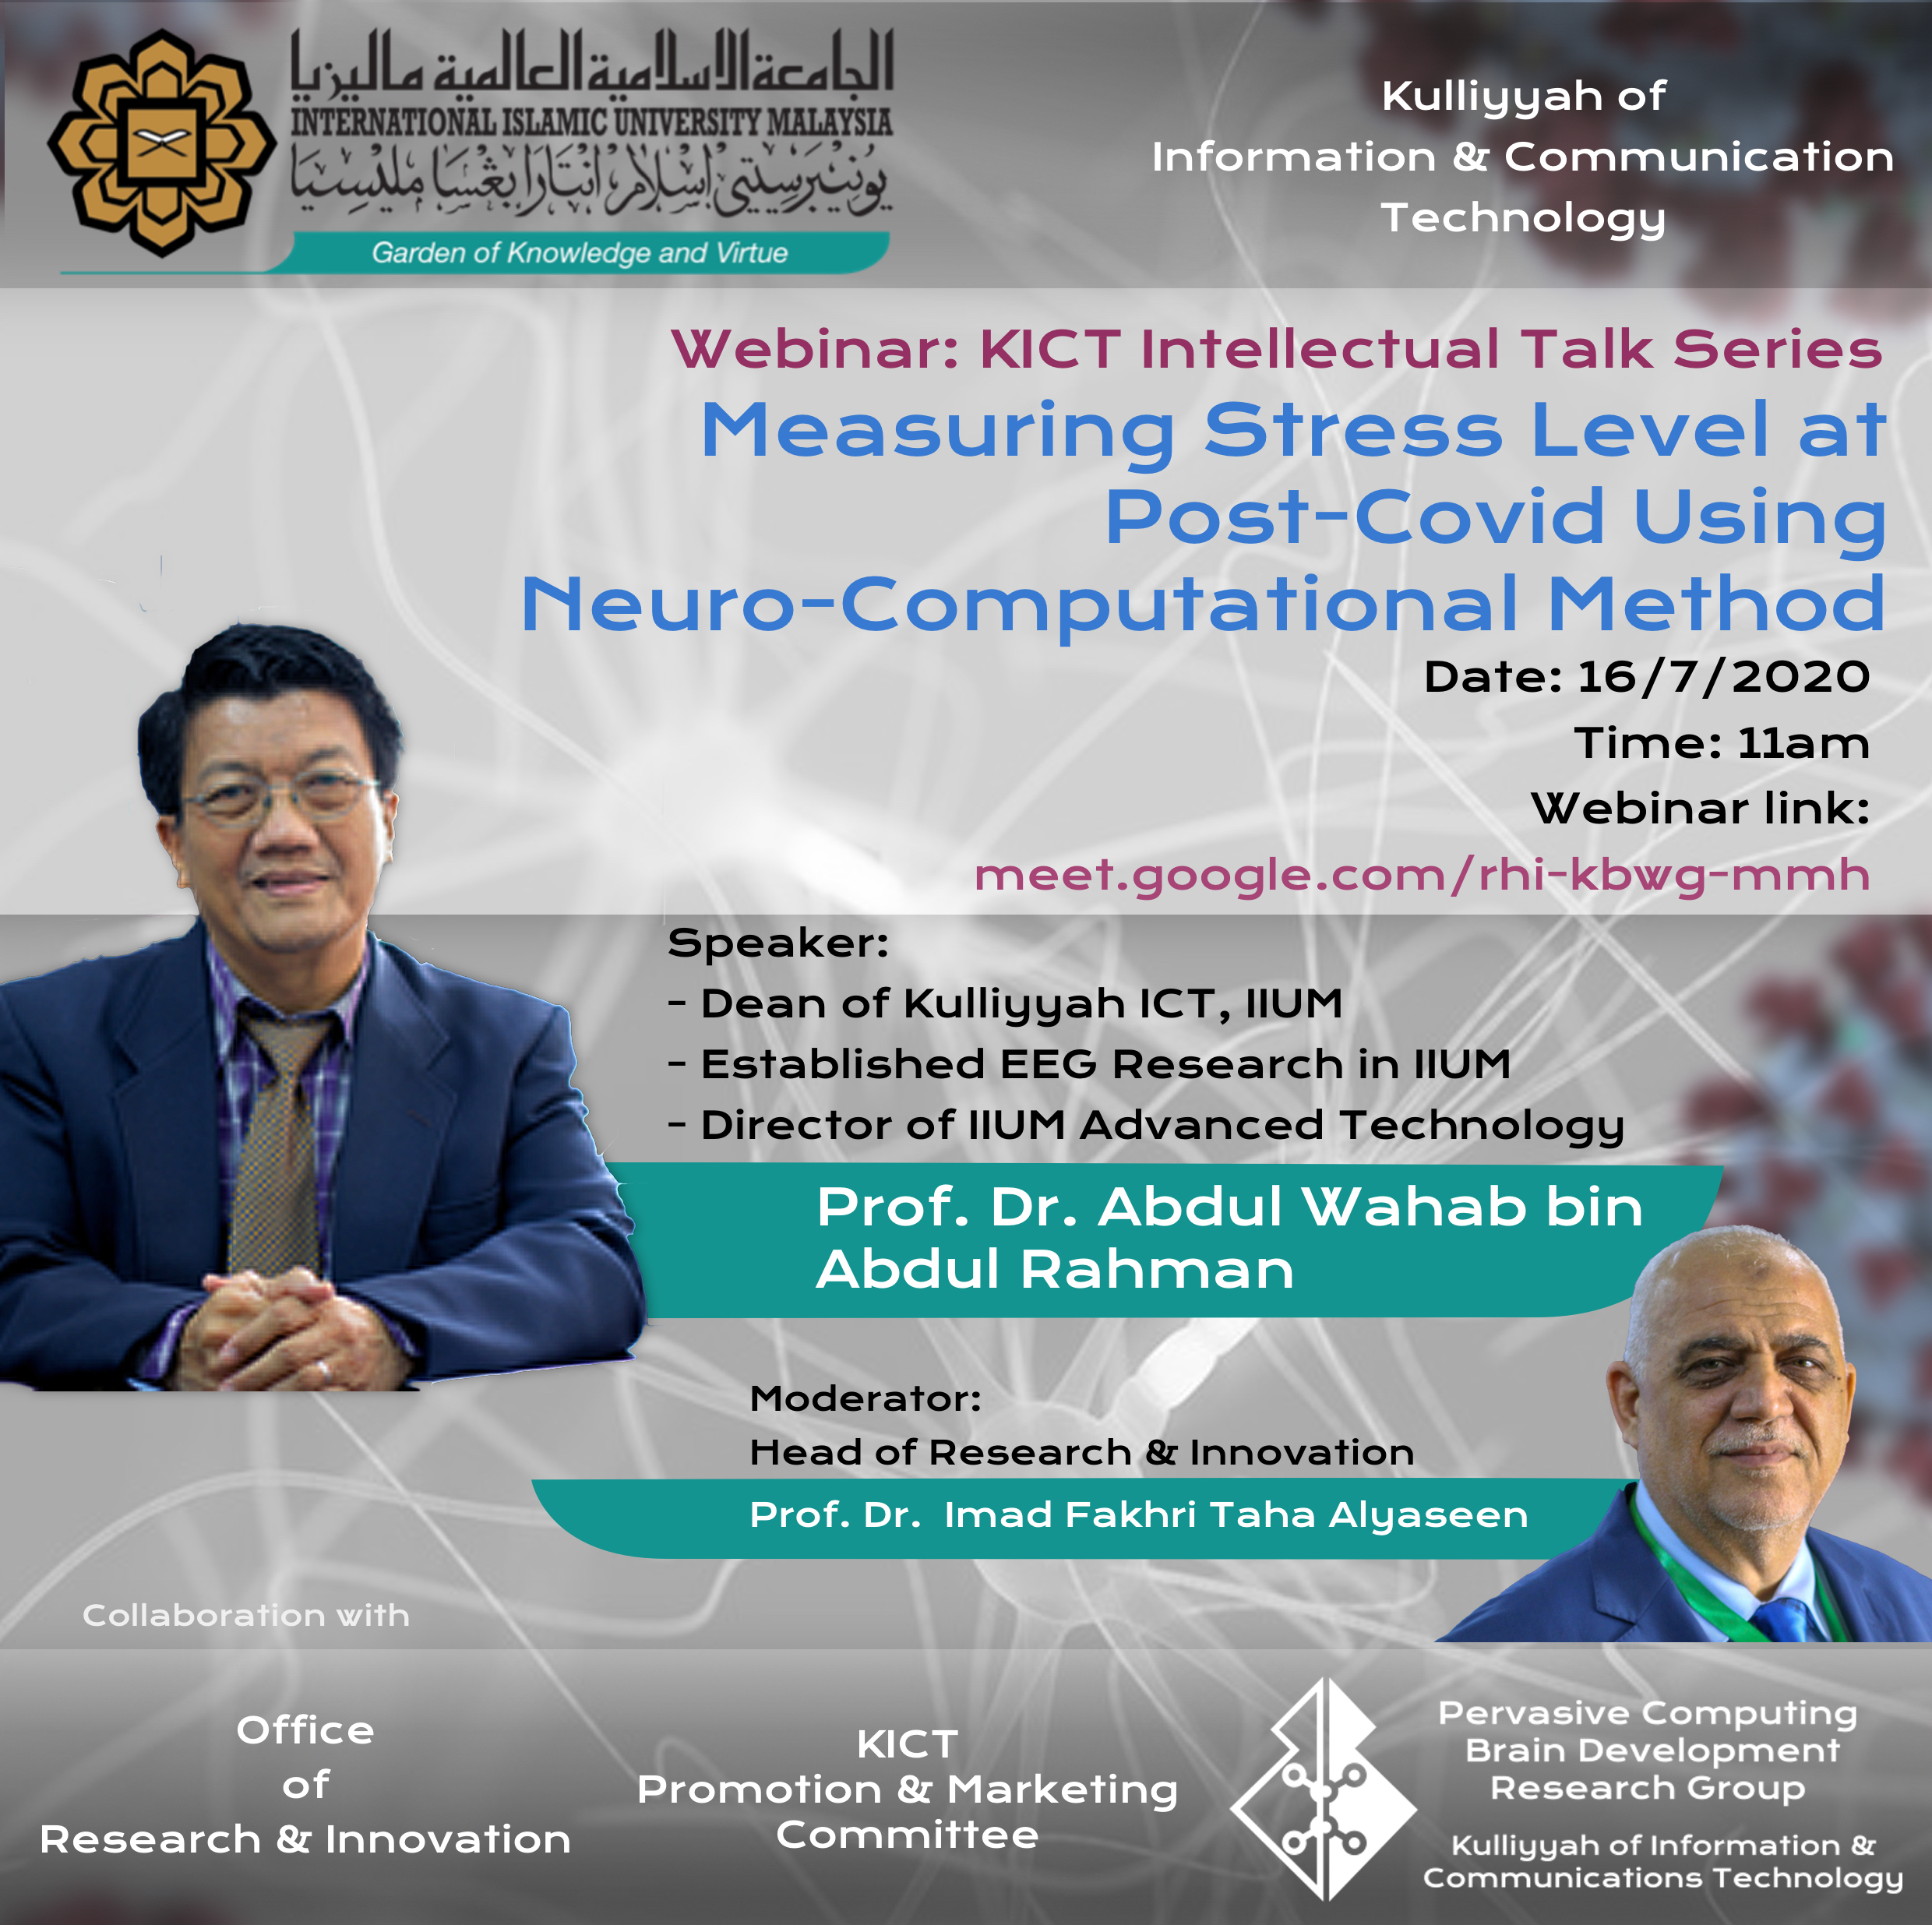 Webinar: KICT Intellectual Talk Series